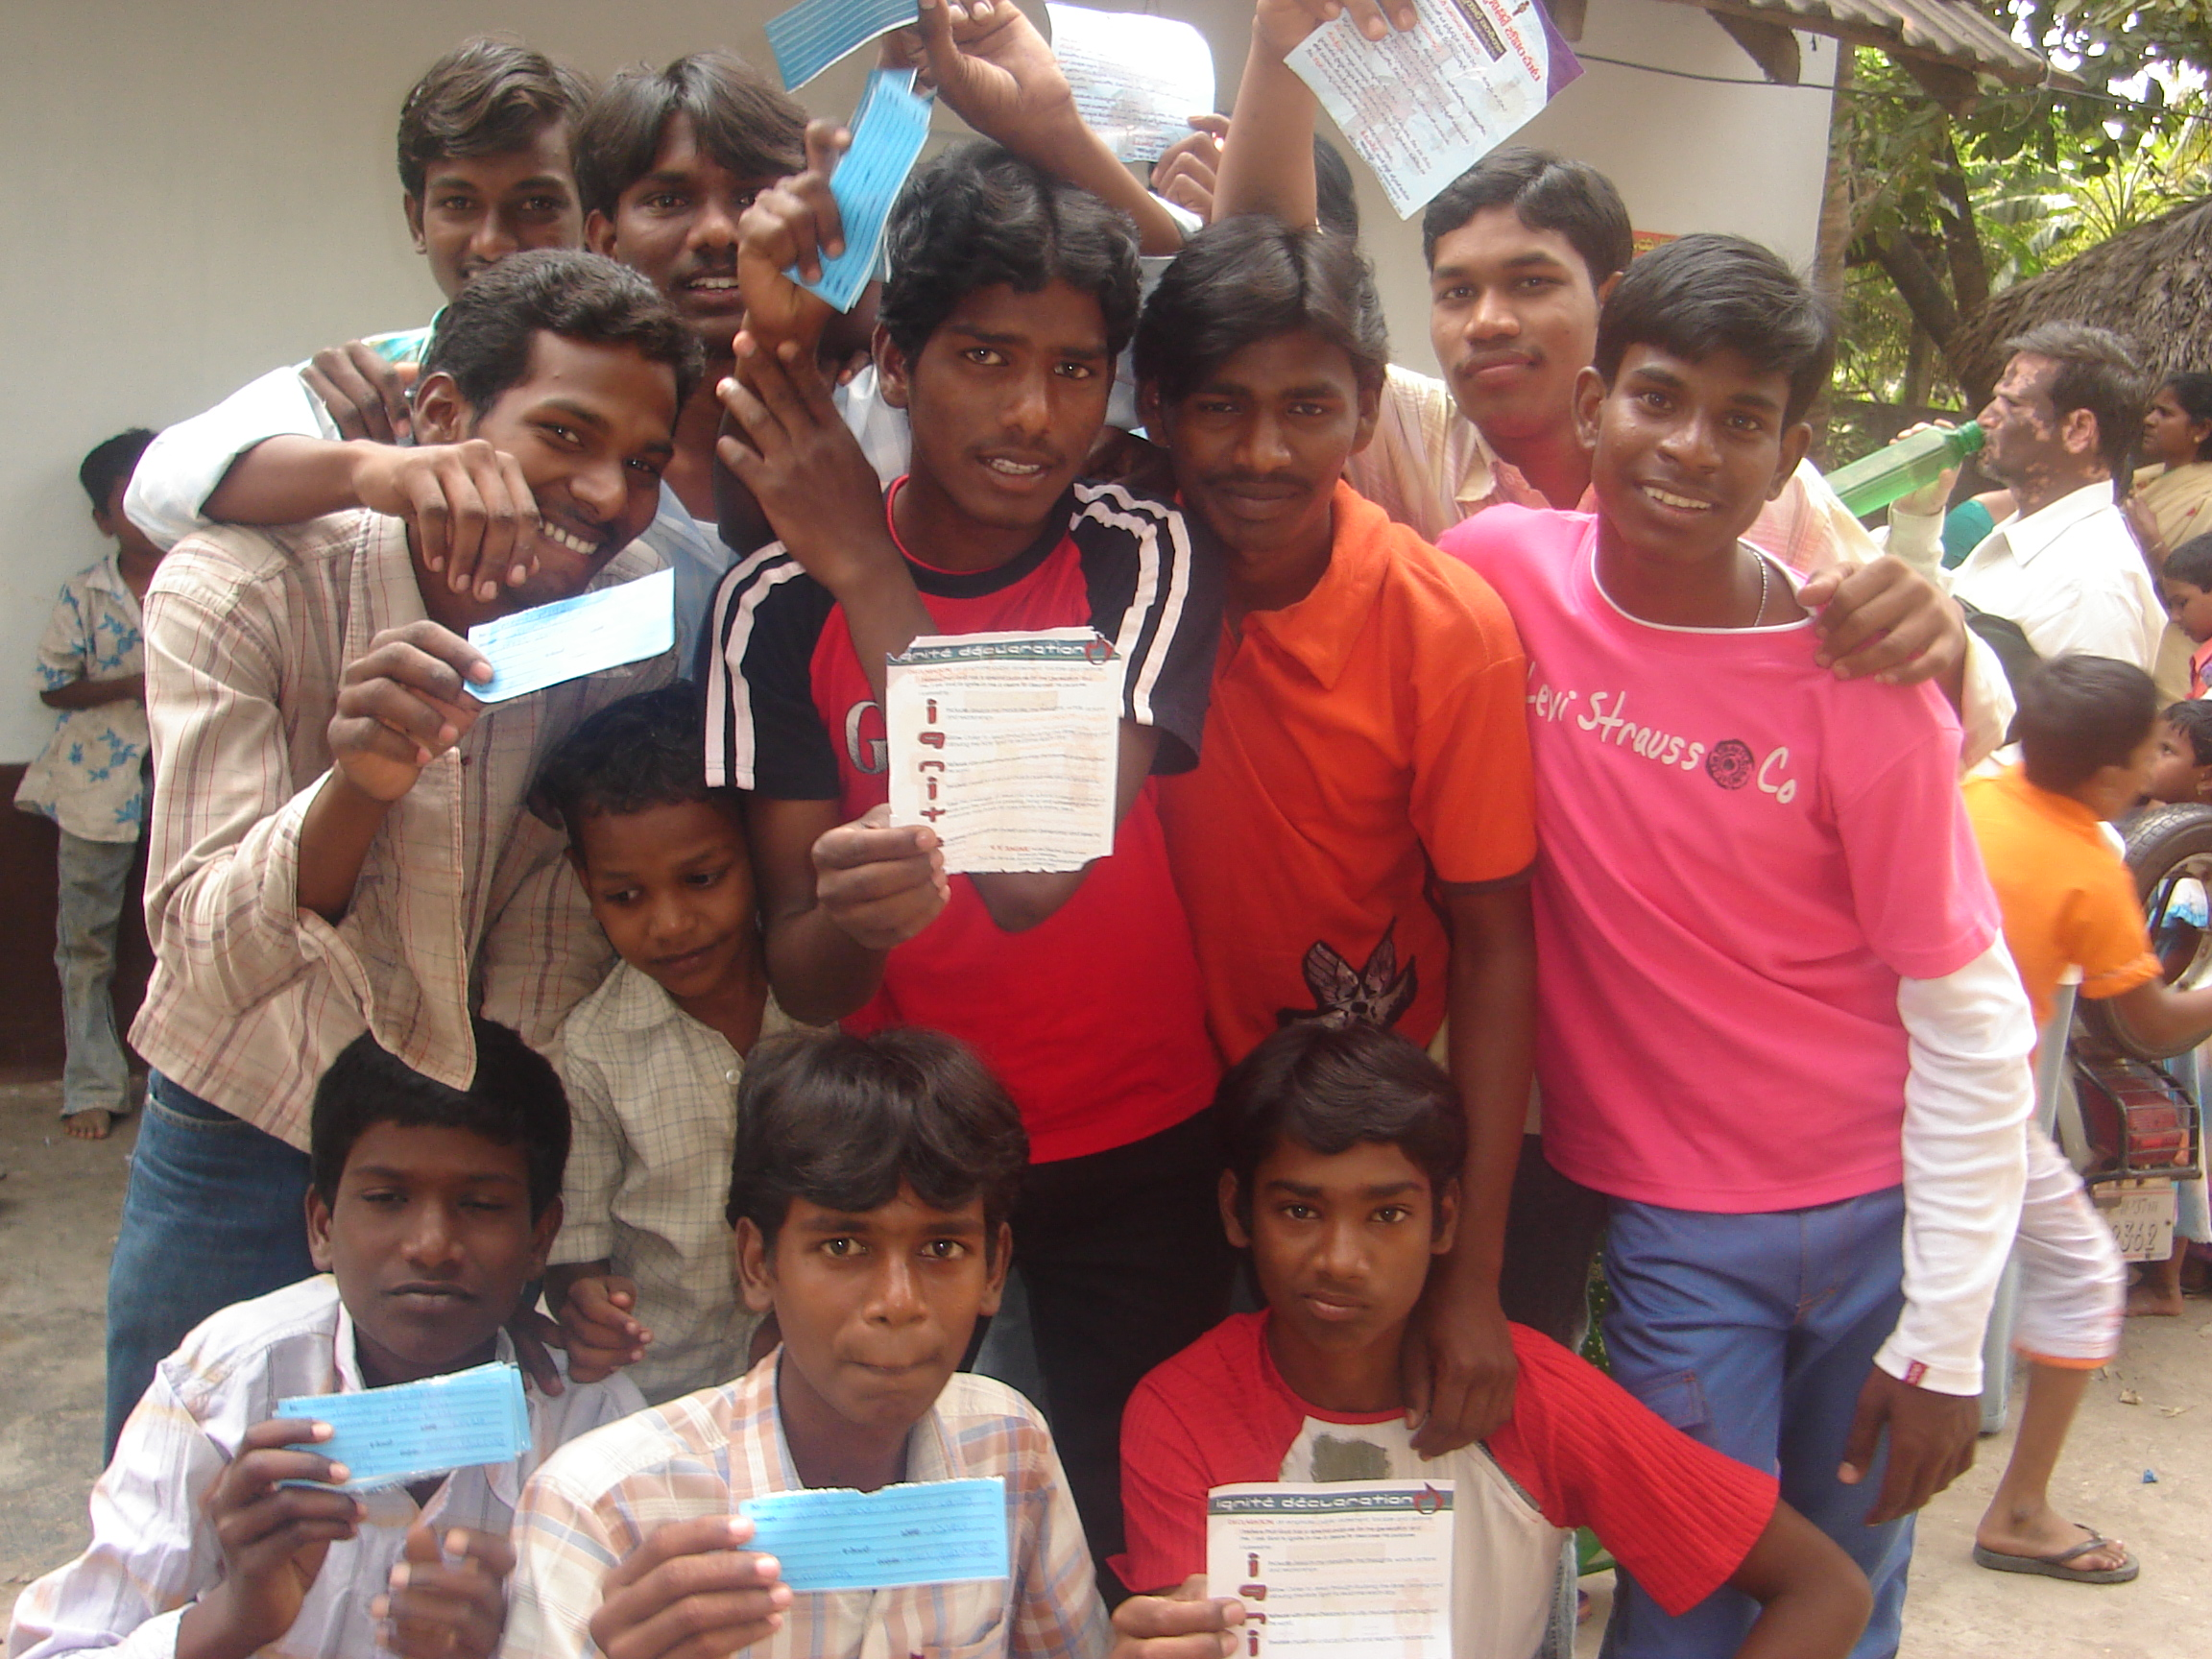 Young people with their Ignite cards